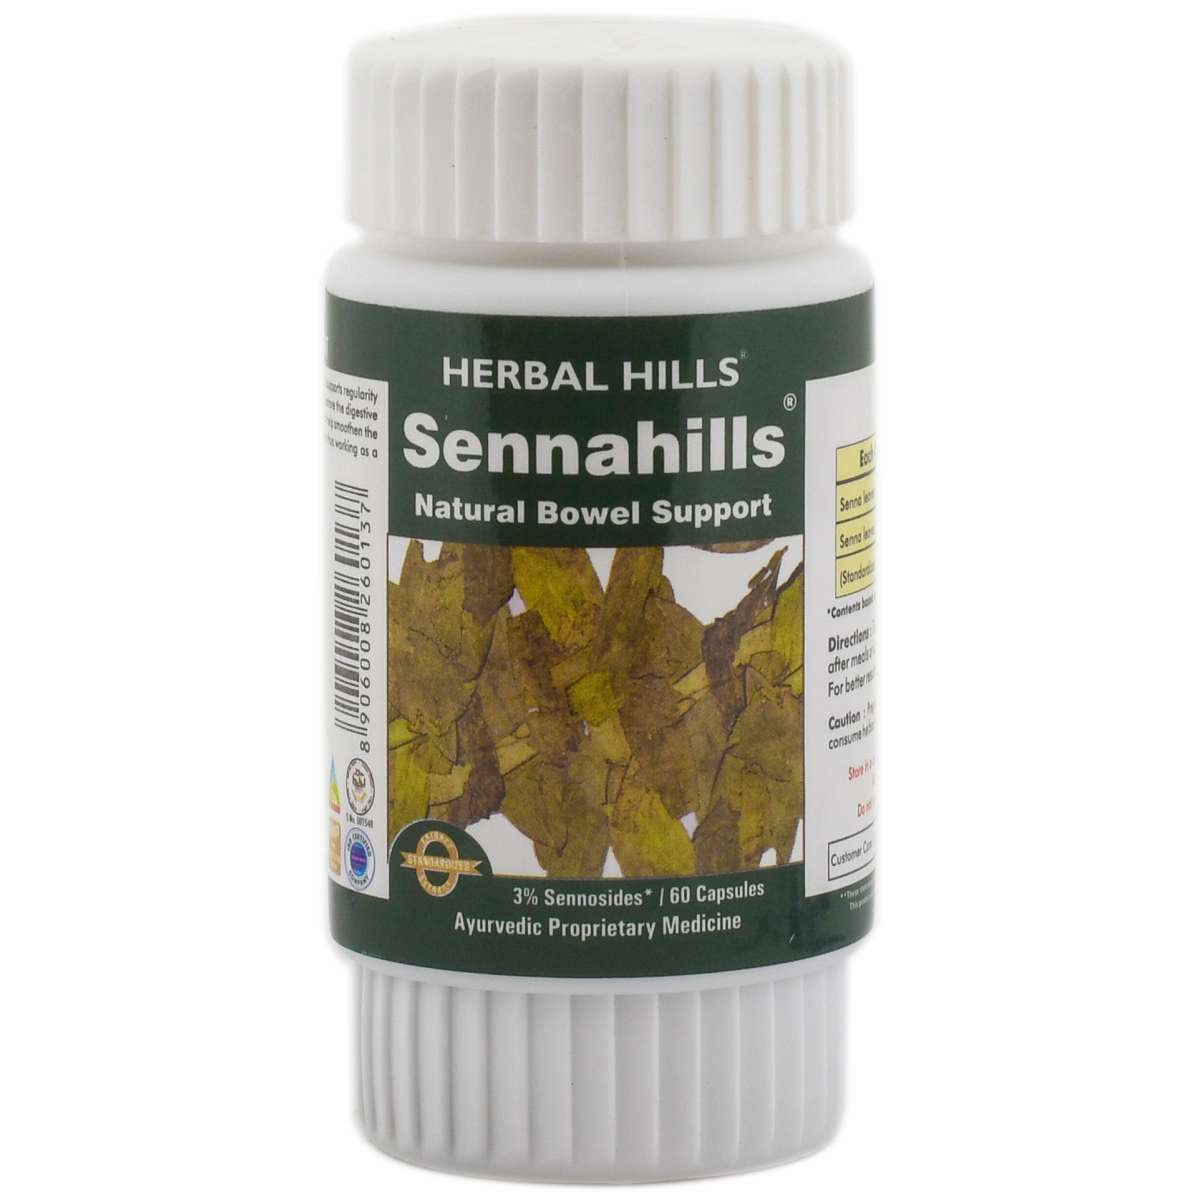 Herbal Hills Senna 60 Capsule Ayurvedic Senna Leaves (cassia angustifolia) 450 mg Powder and Extract blend in a capsule